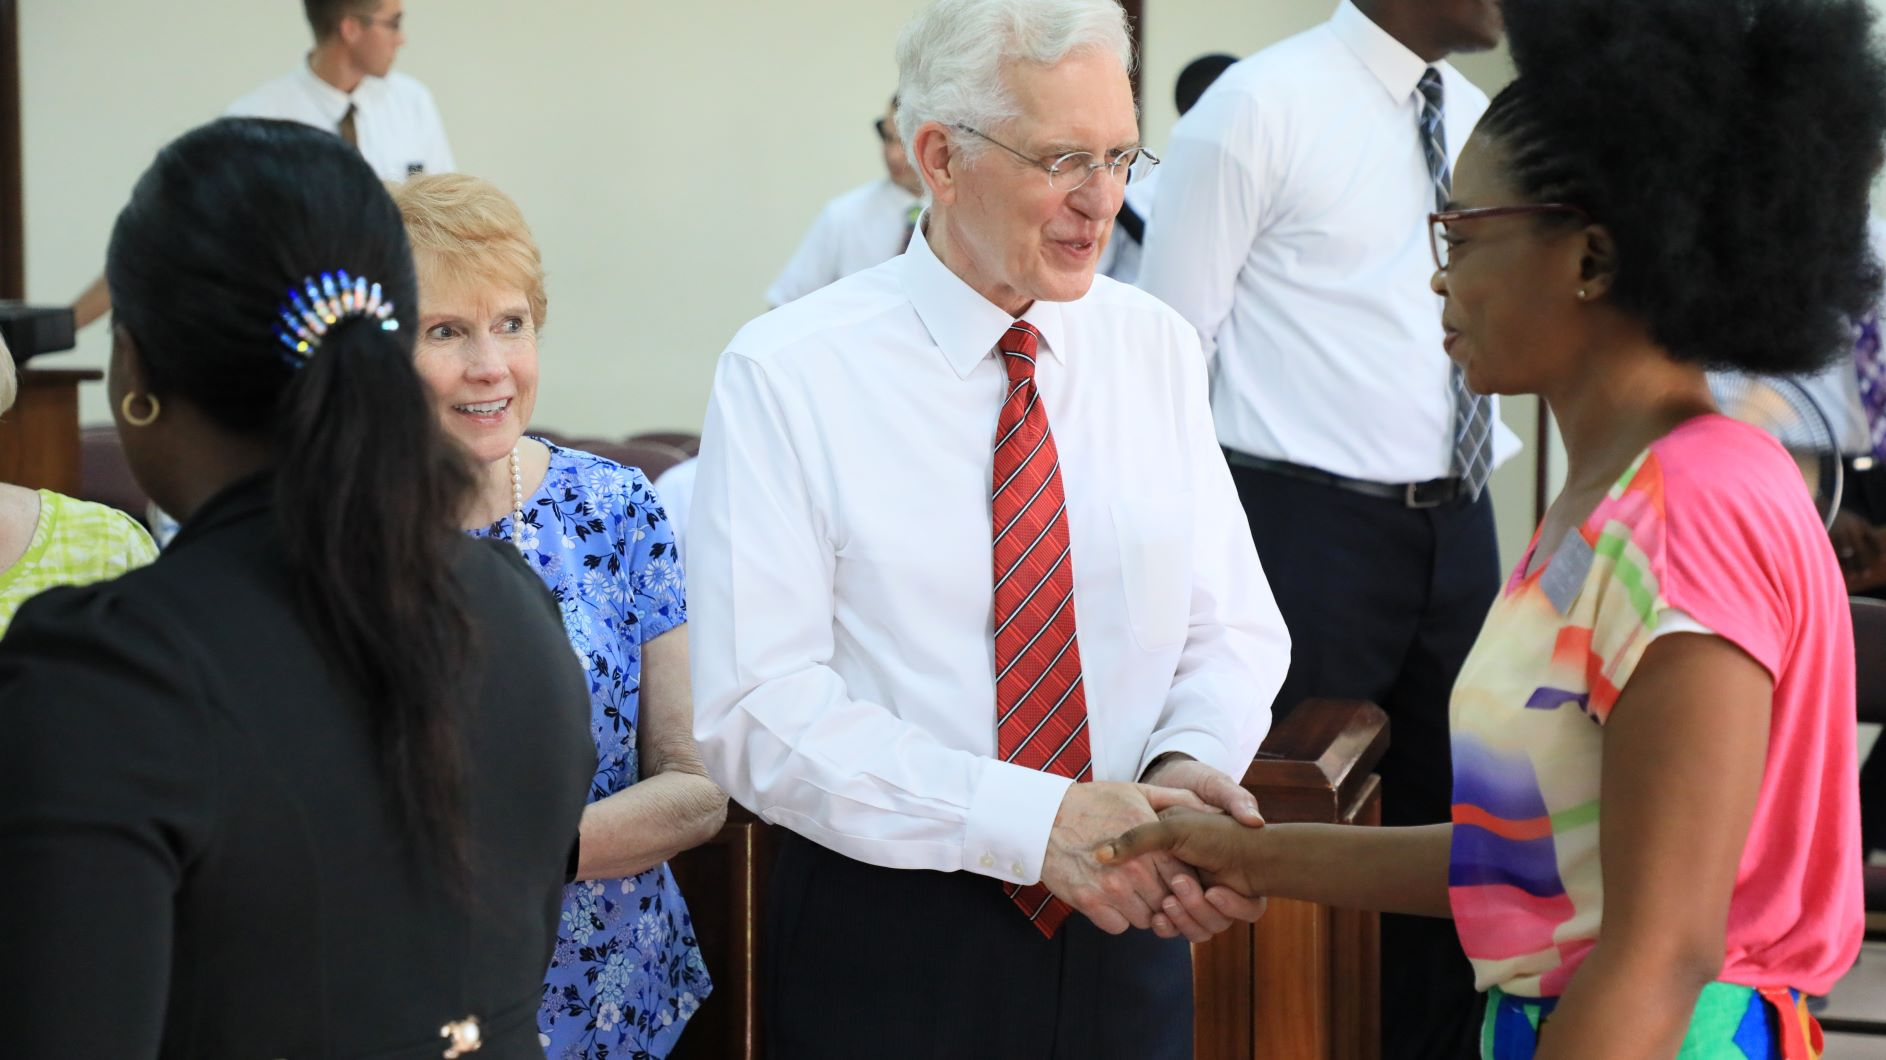 Elder D. Todd Christofferson and Sister Kathy Christofferson greet Relief Society sisters during a gathering in Cote d'Ivoire.